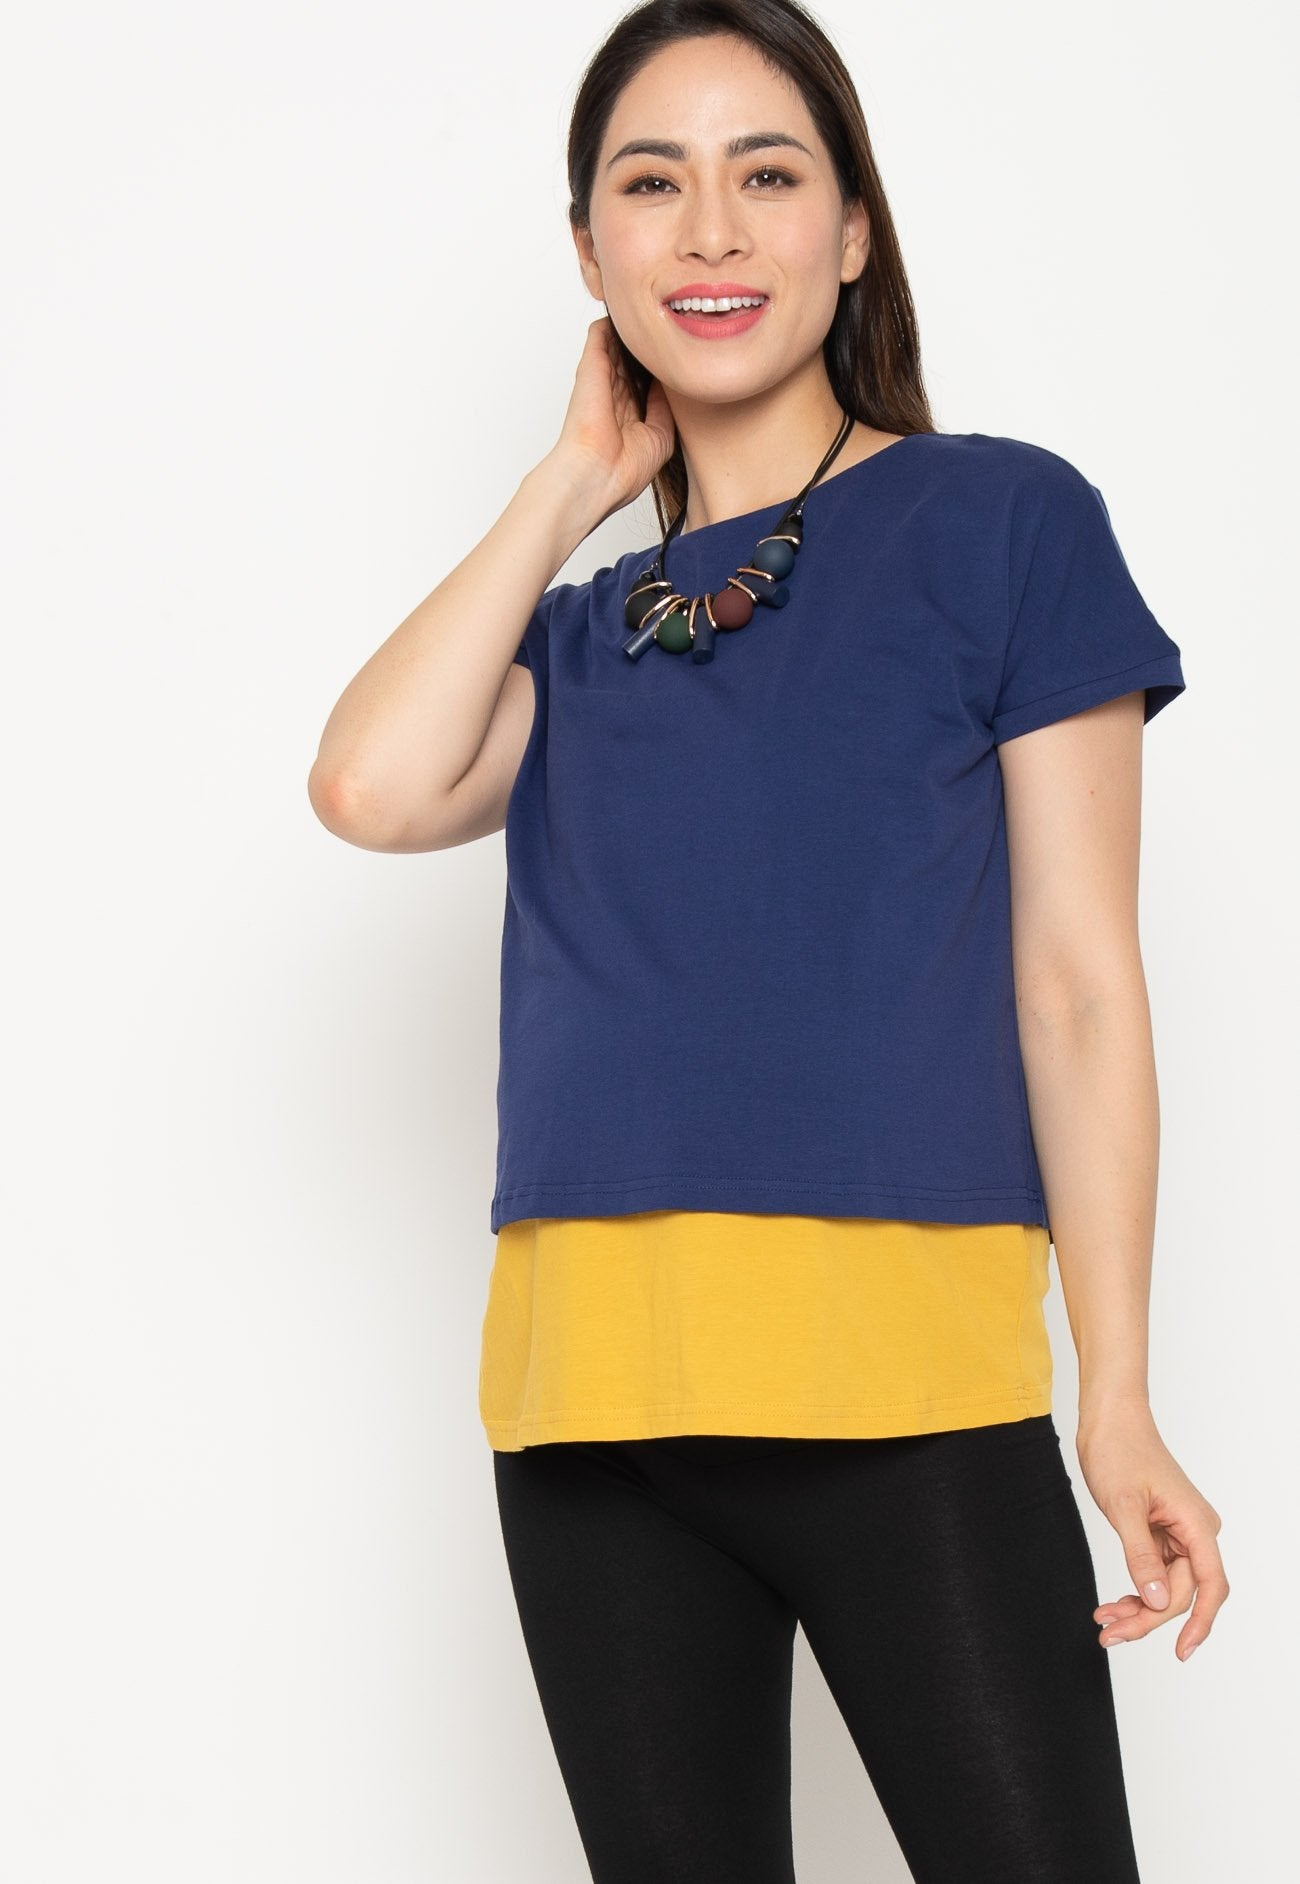 53c1fb145ce7d Two Tone Layered Nursing Top in Navy and Yellow Nursing Wear Mothercot